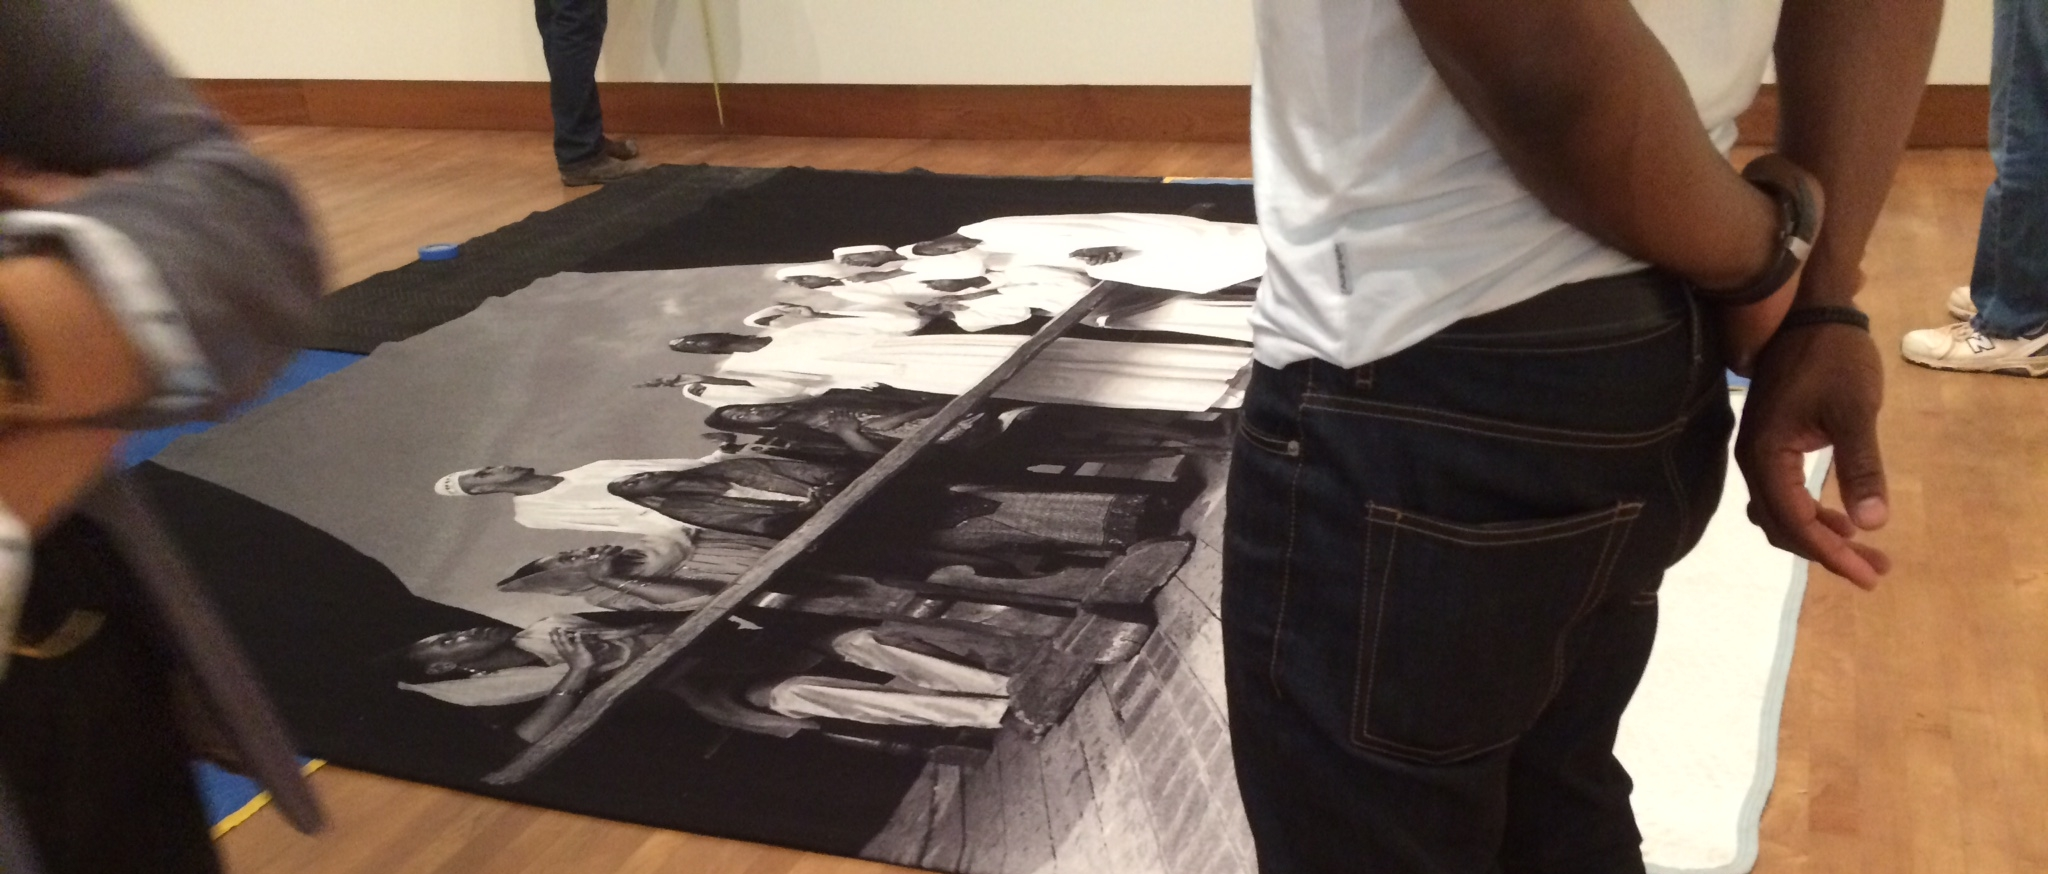 Exhibition preparations for  Squad - The calling of the Common Hero: Photographs by Faisal Abdu'Allah, at the Chazen Museum. Photo: L. Harper